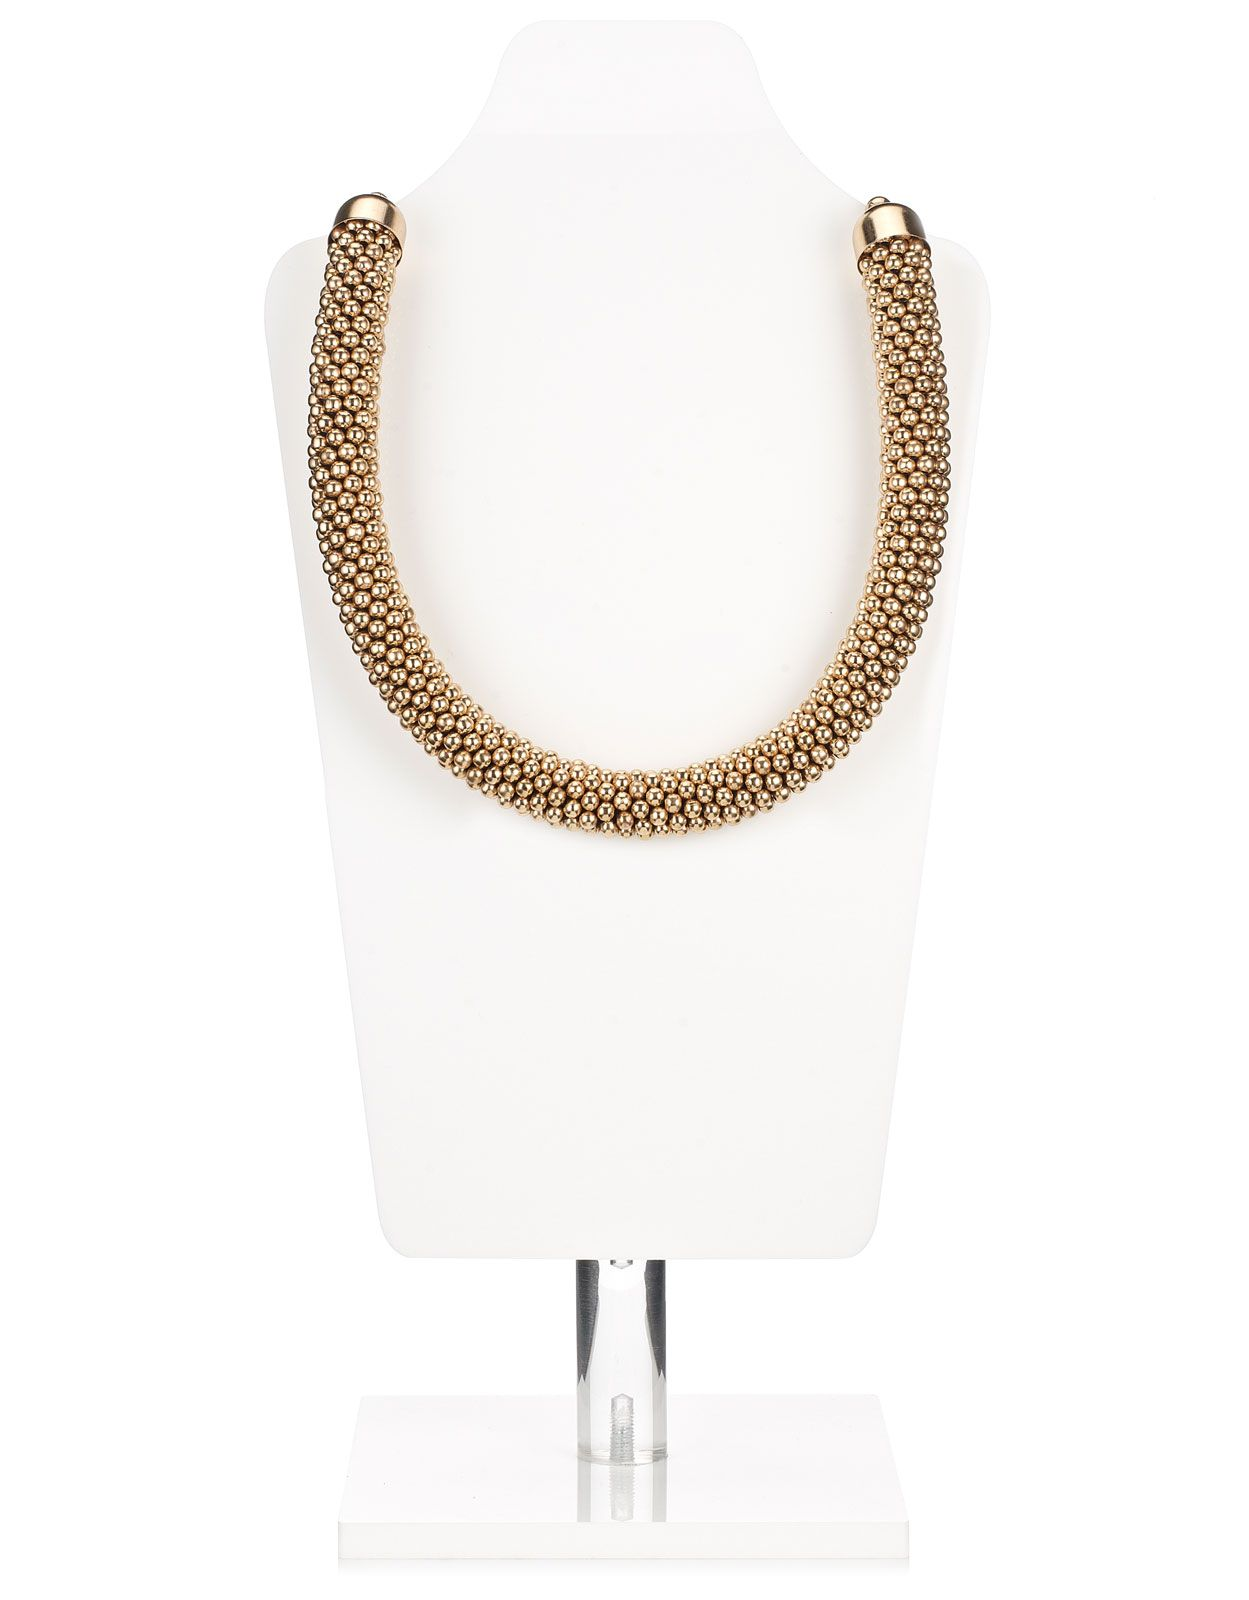 ae299bab2075fc Mega Chunky Bobble Necklace | Gold | Accessorize Accessorize Bags, Silver  Necklaces, Pearl Necklace